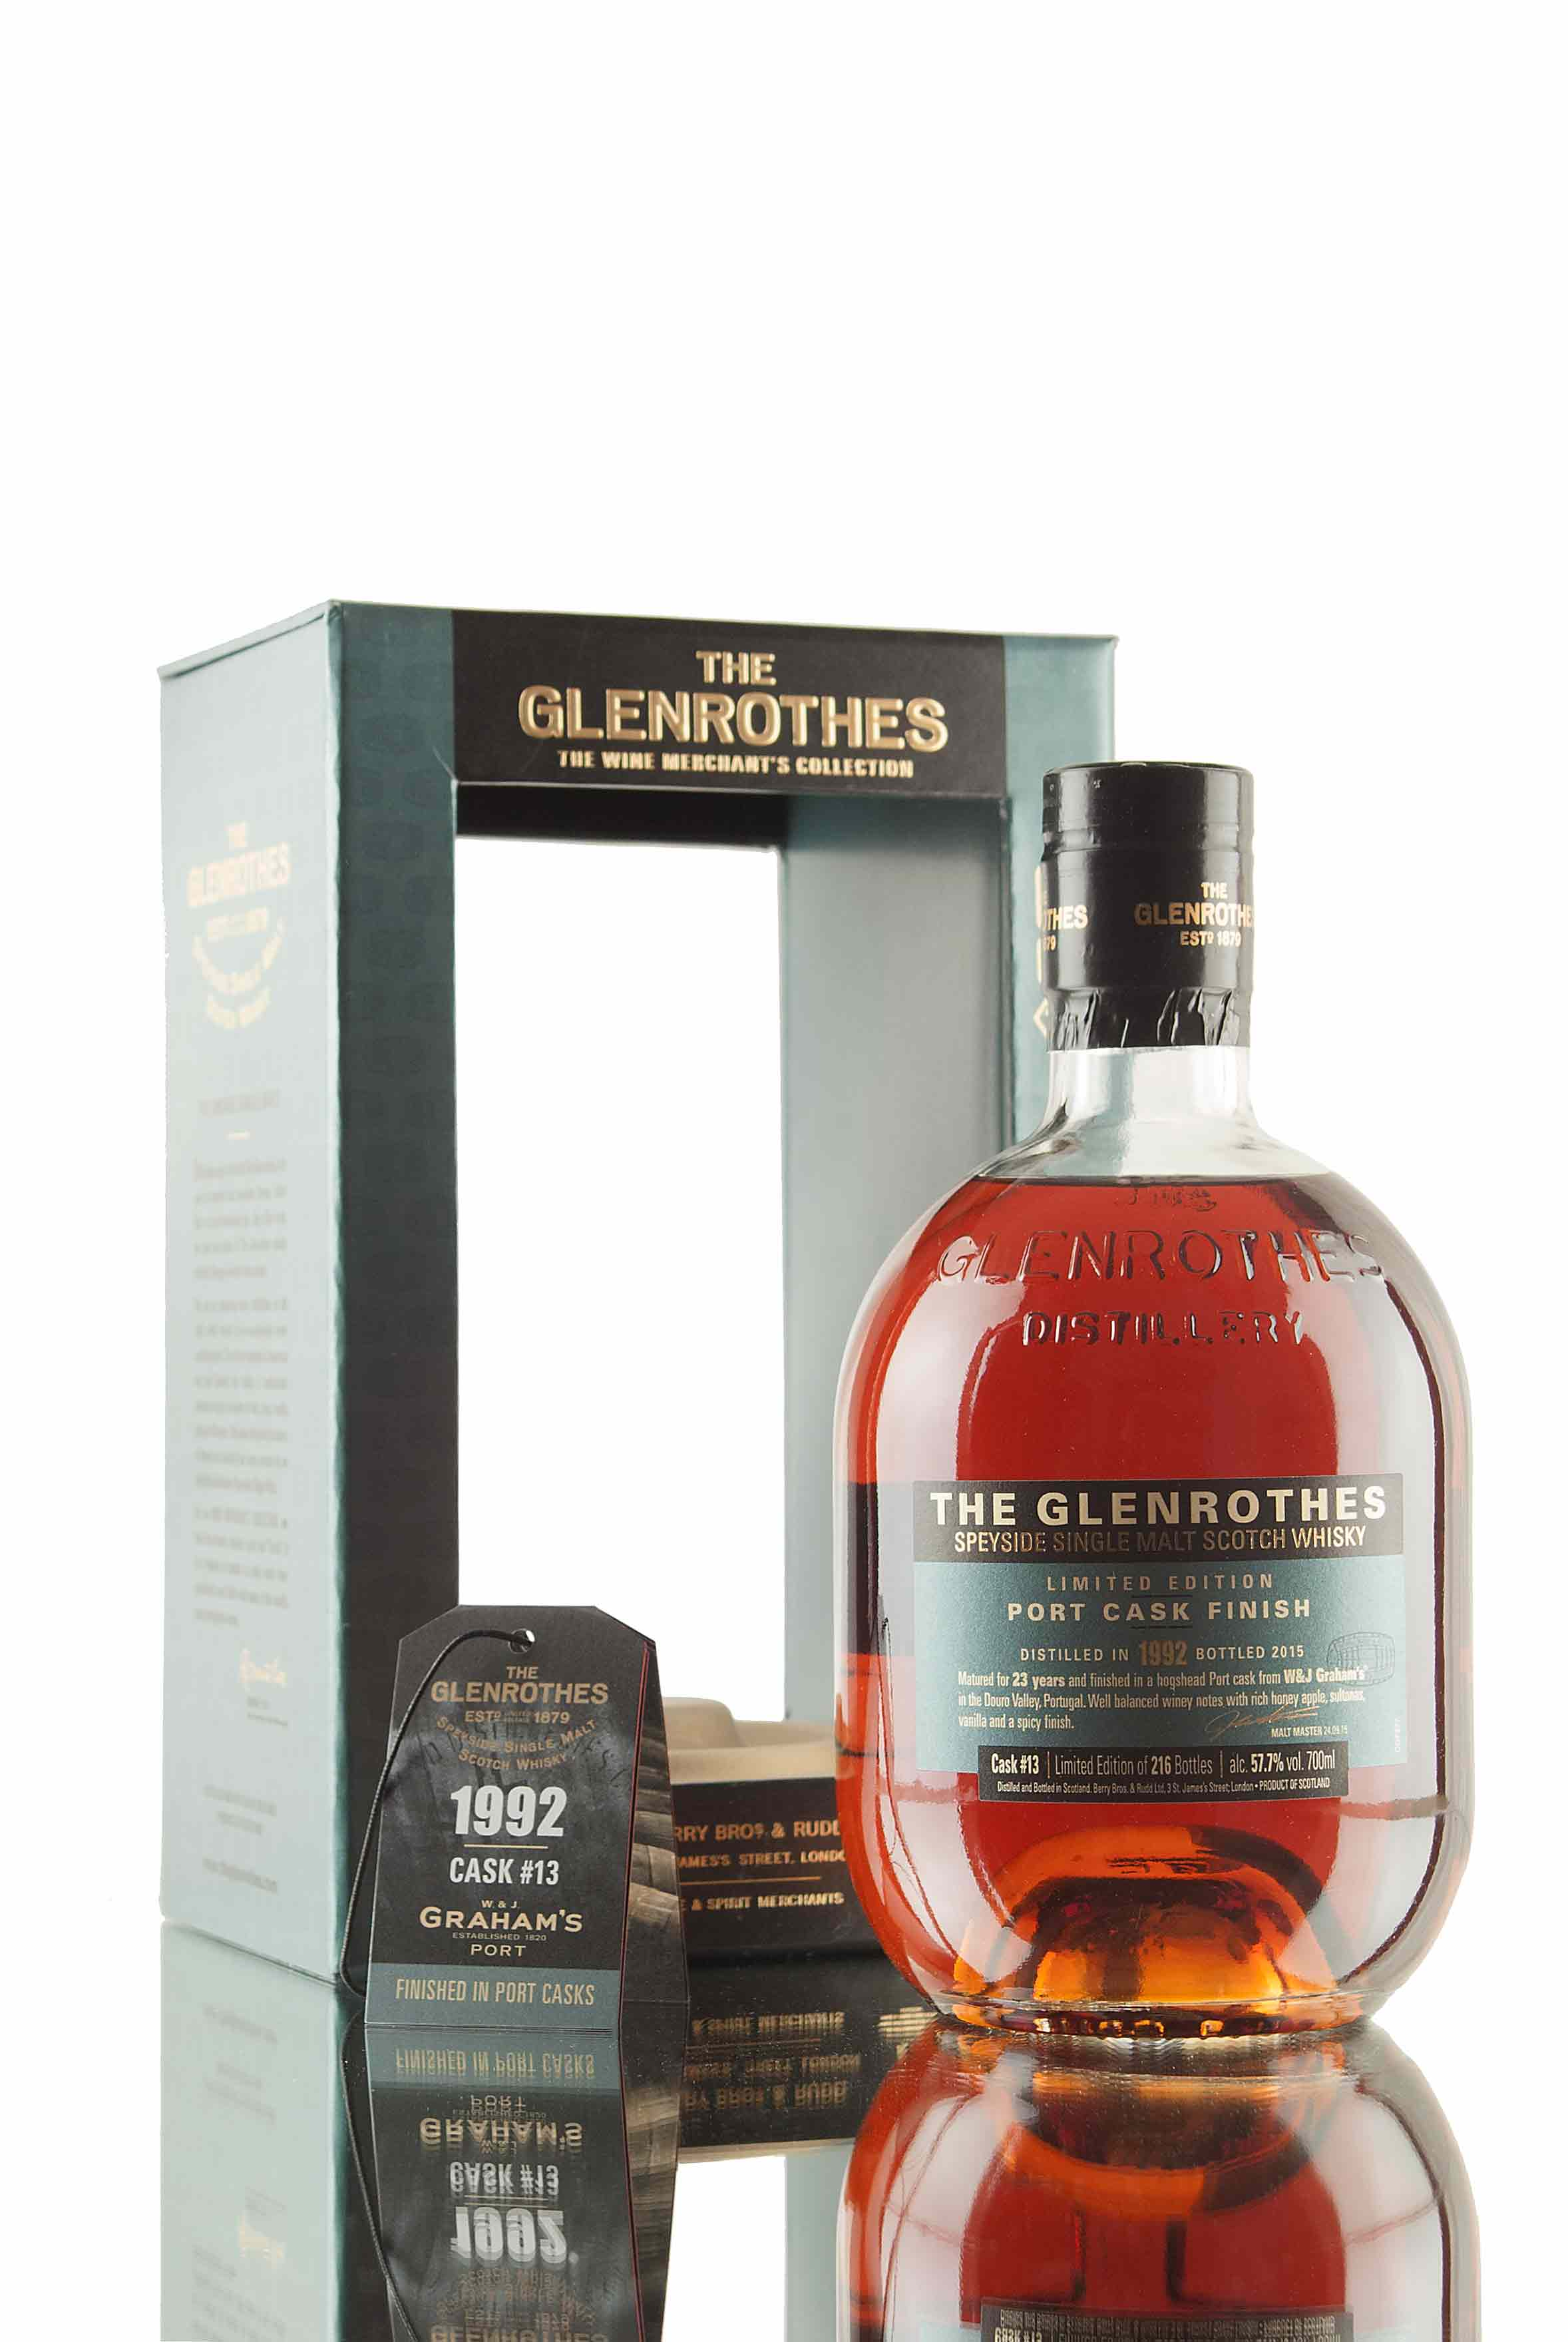 The Glenrothes Graham's Cask #13 | Wine Merchant's Collection